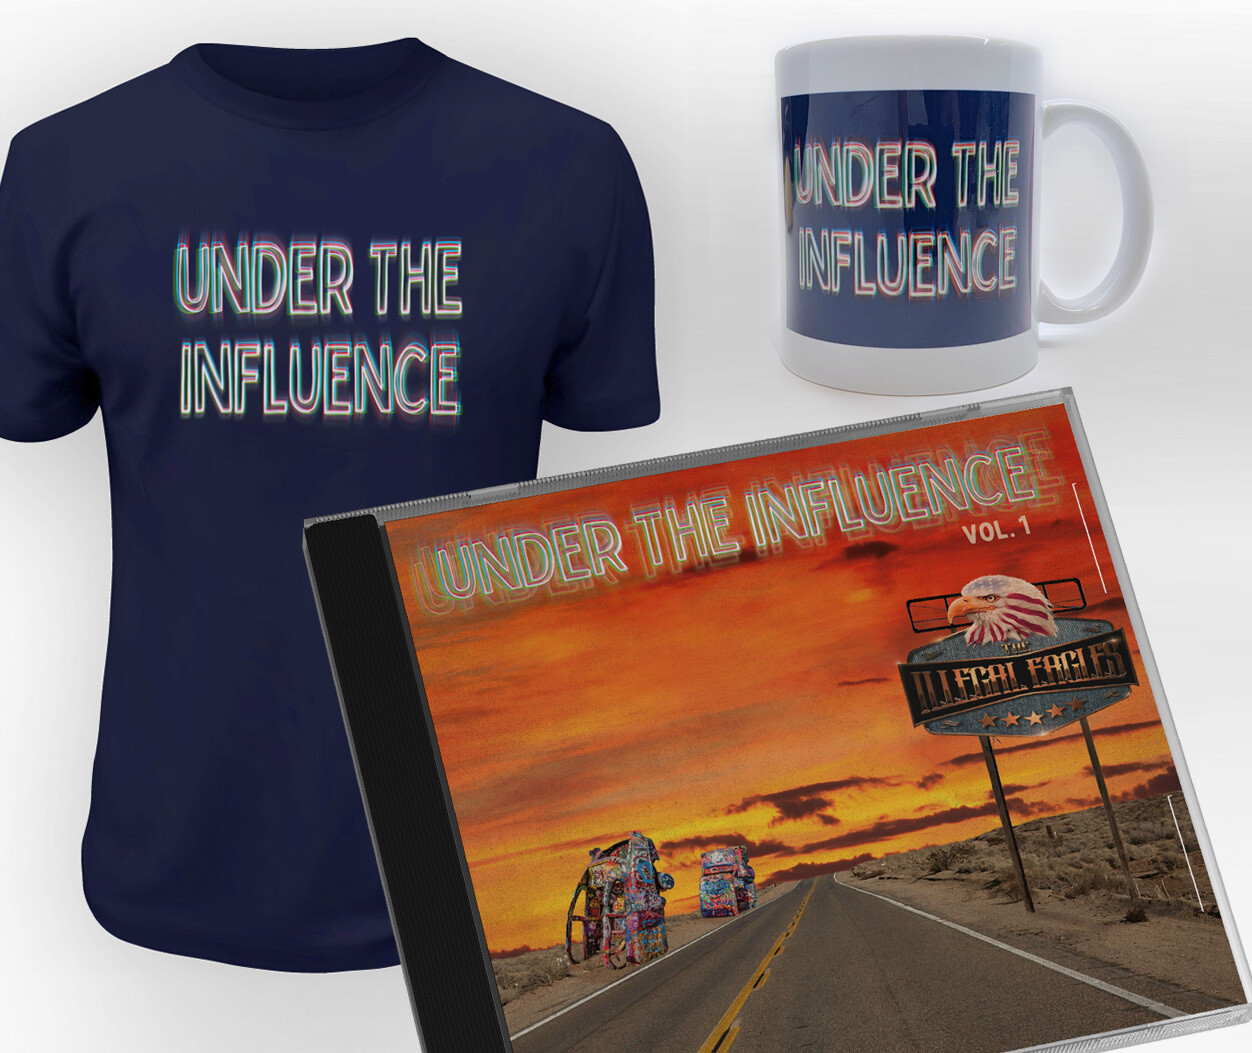 NEW! - UNDER THE INFLUENCE GIFT SET - NEW CD Album, Navy Tee Shirt and Mug Set.